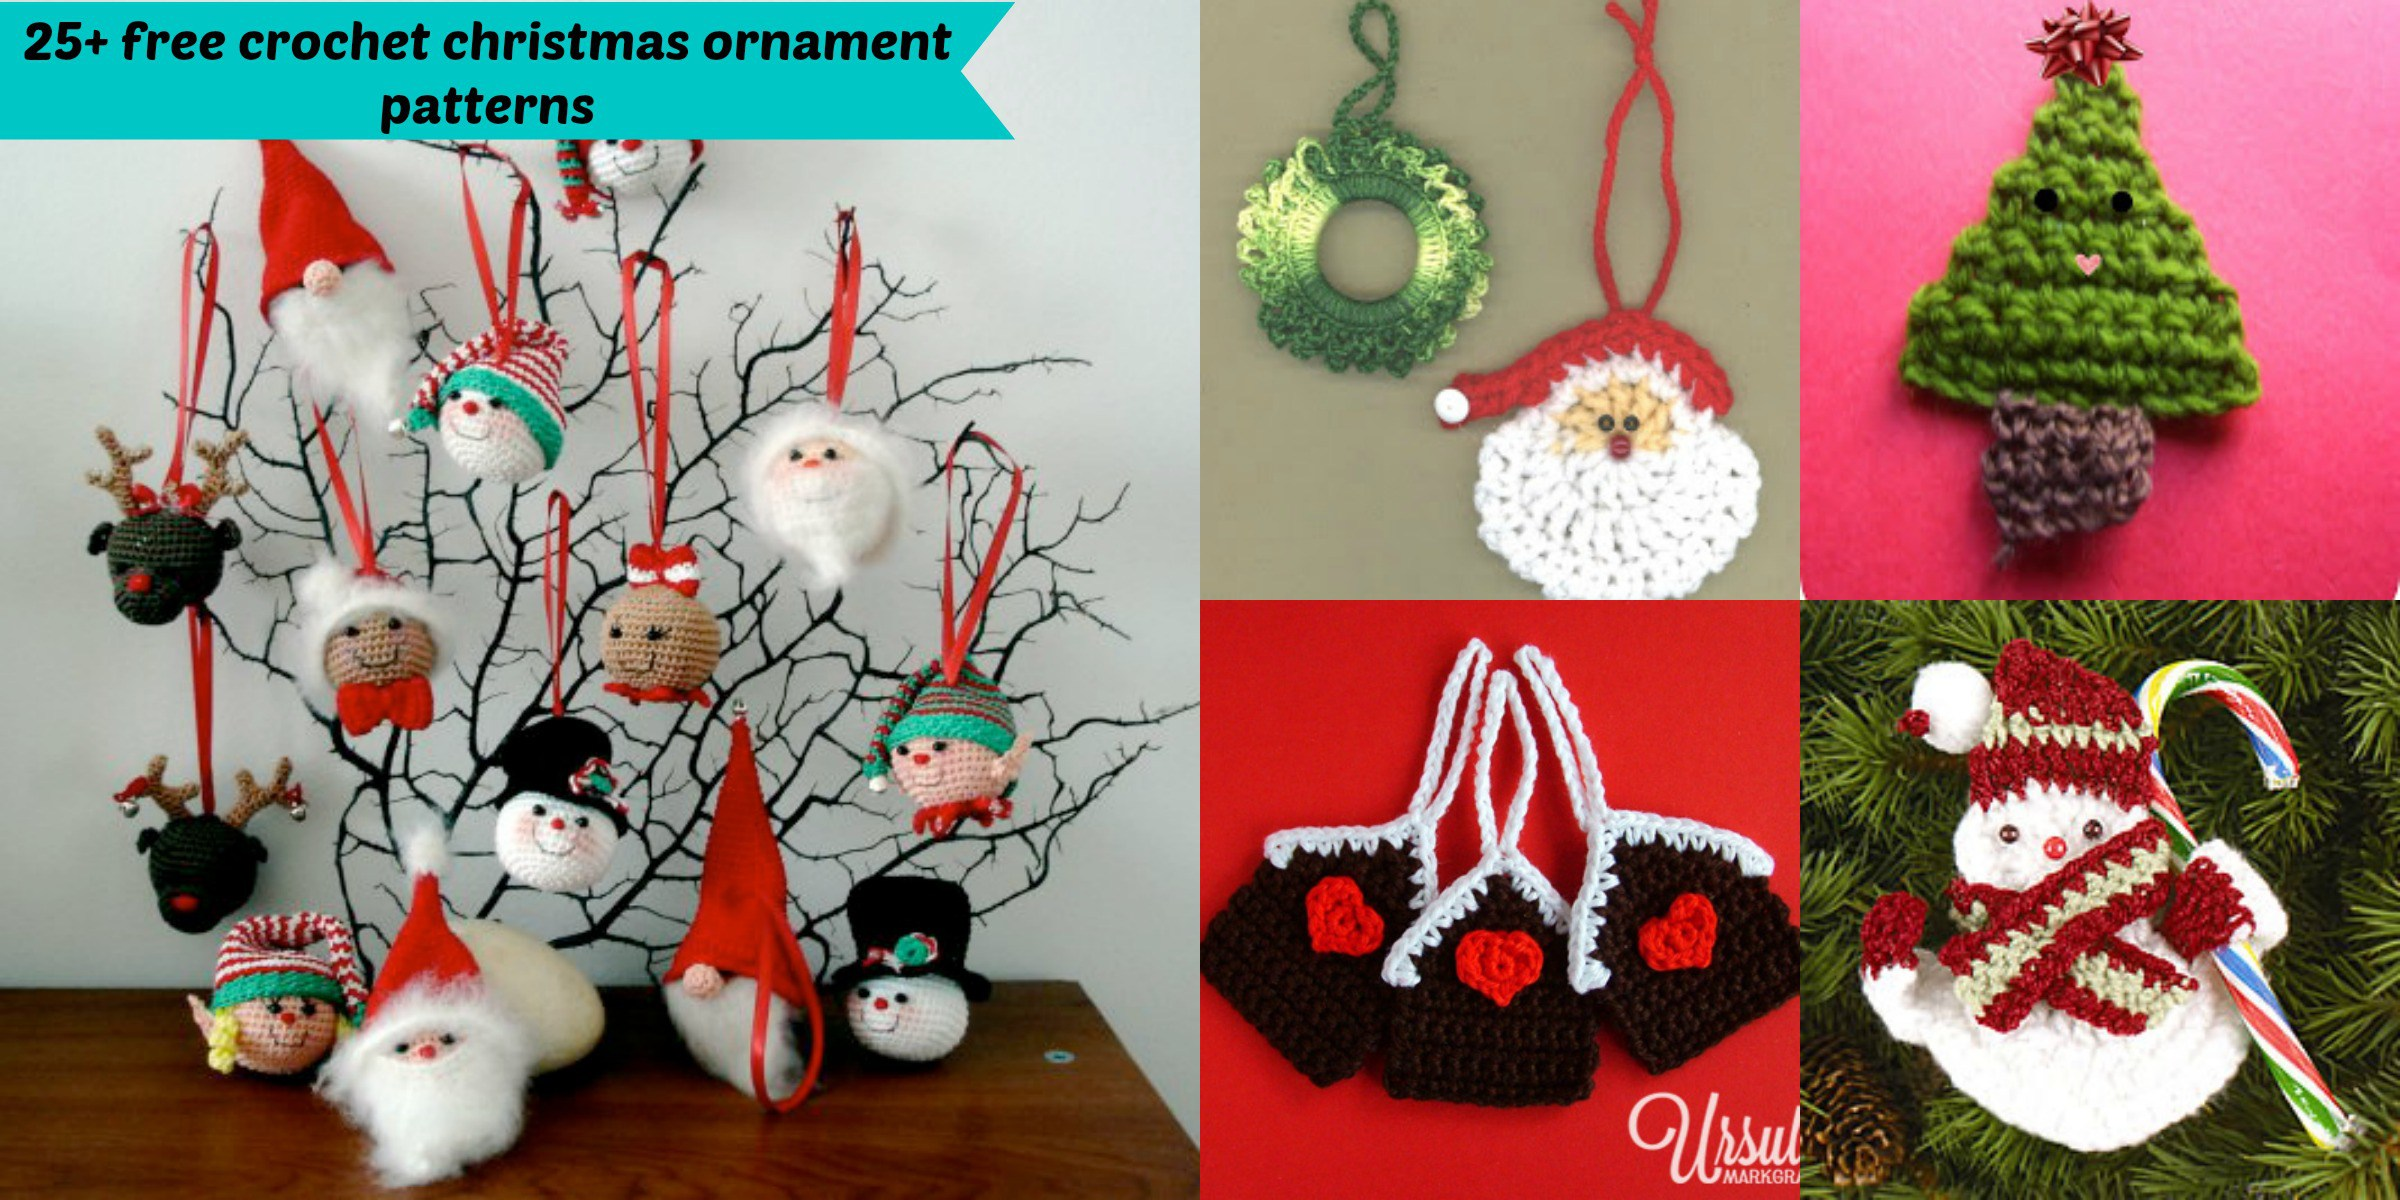 crochet christmas ornaments 25+ free crochet christmas ornament patterns jcuqetd